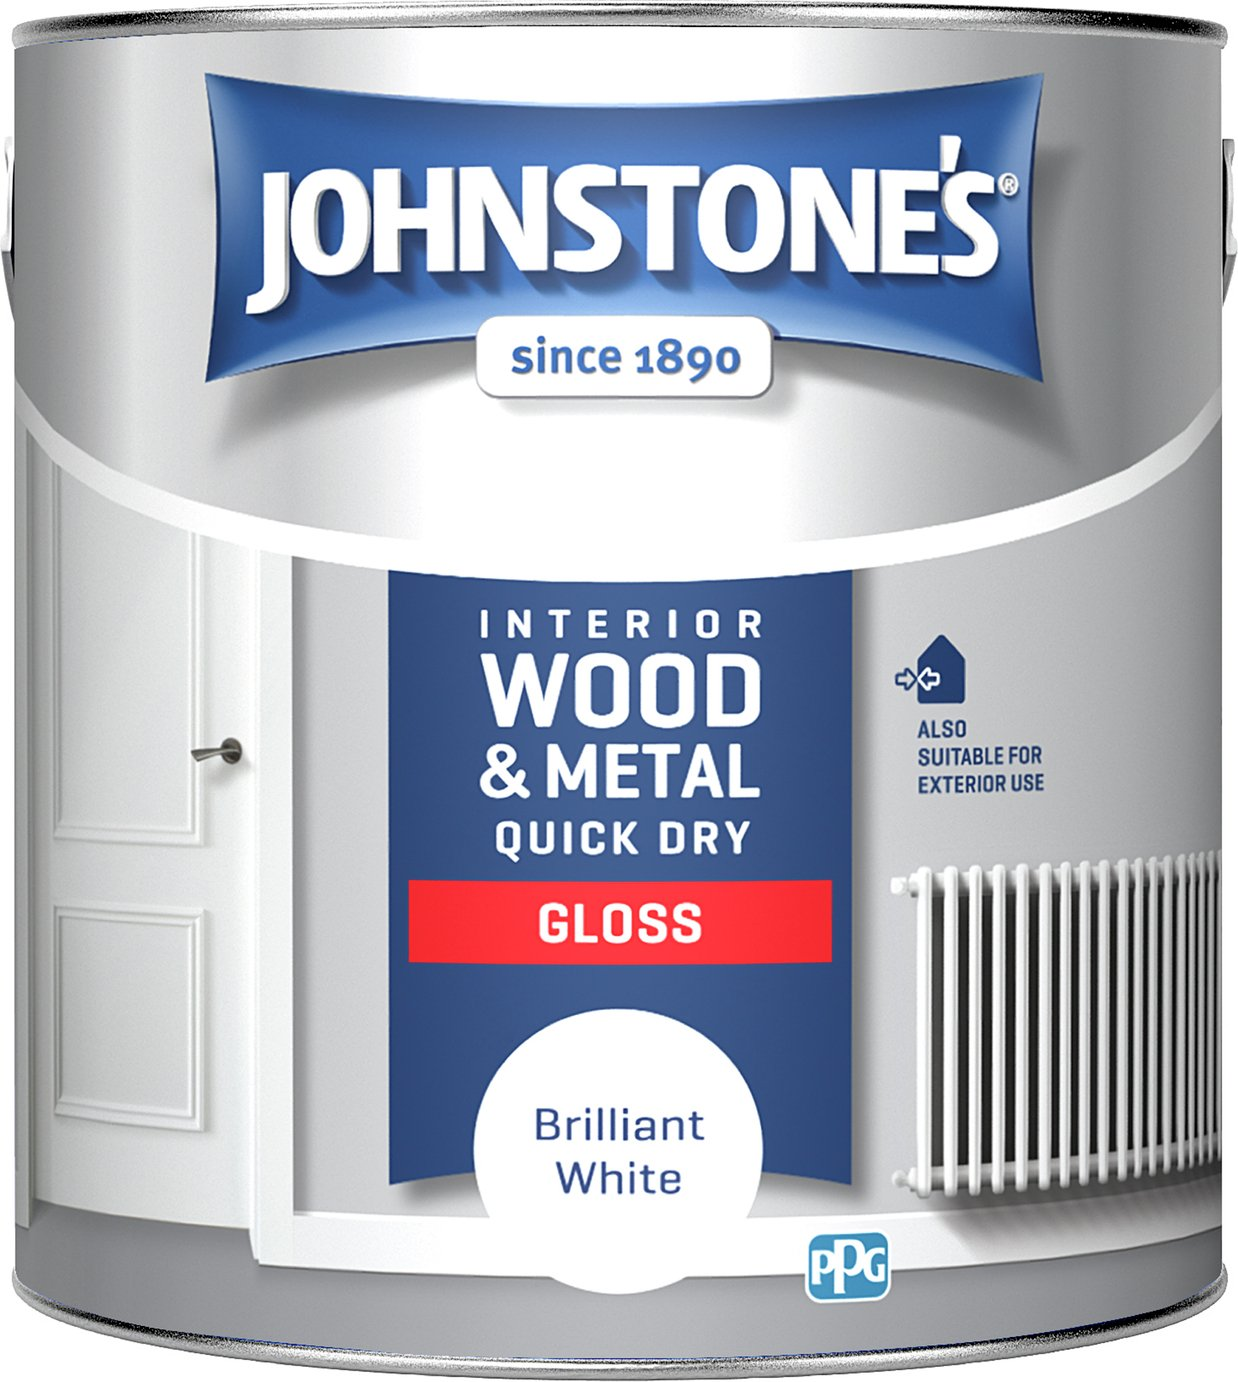 Johnstone's Quick Dry Gloss Paint 2.5 Litre review